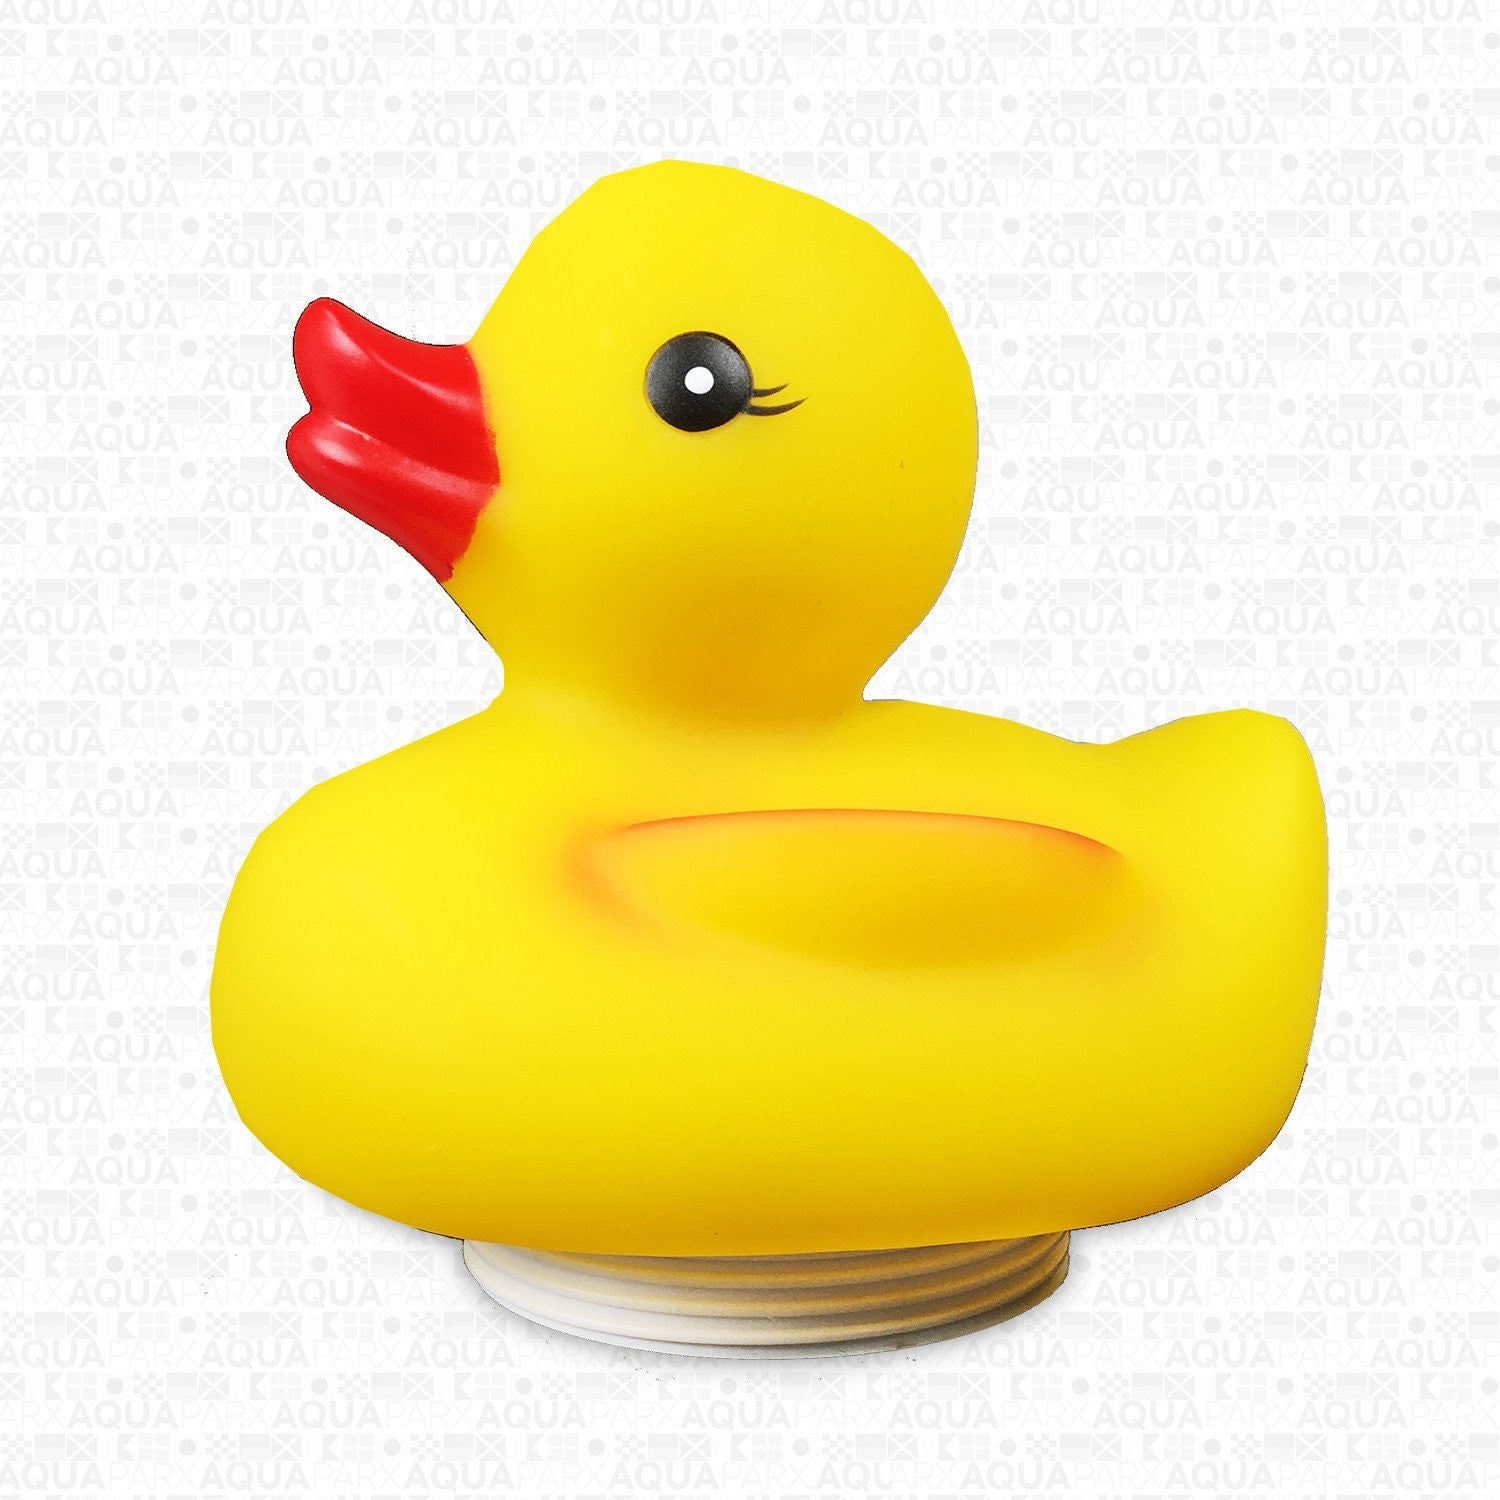 chlorine dispenser - rubber duck